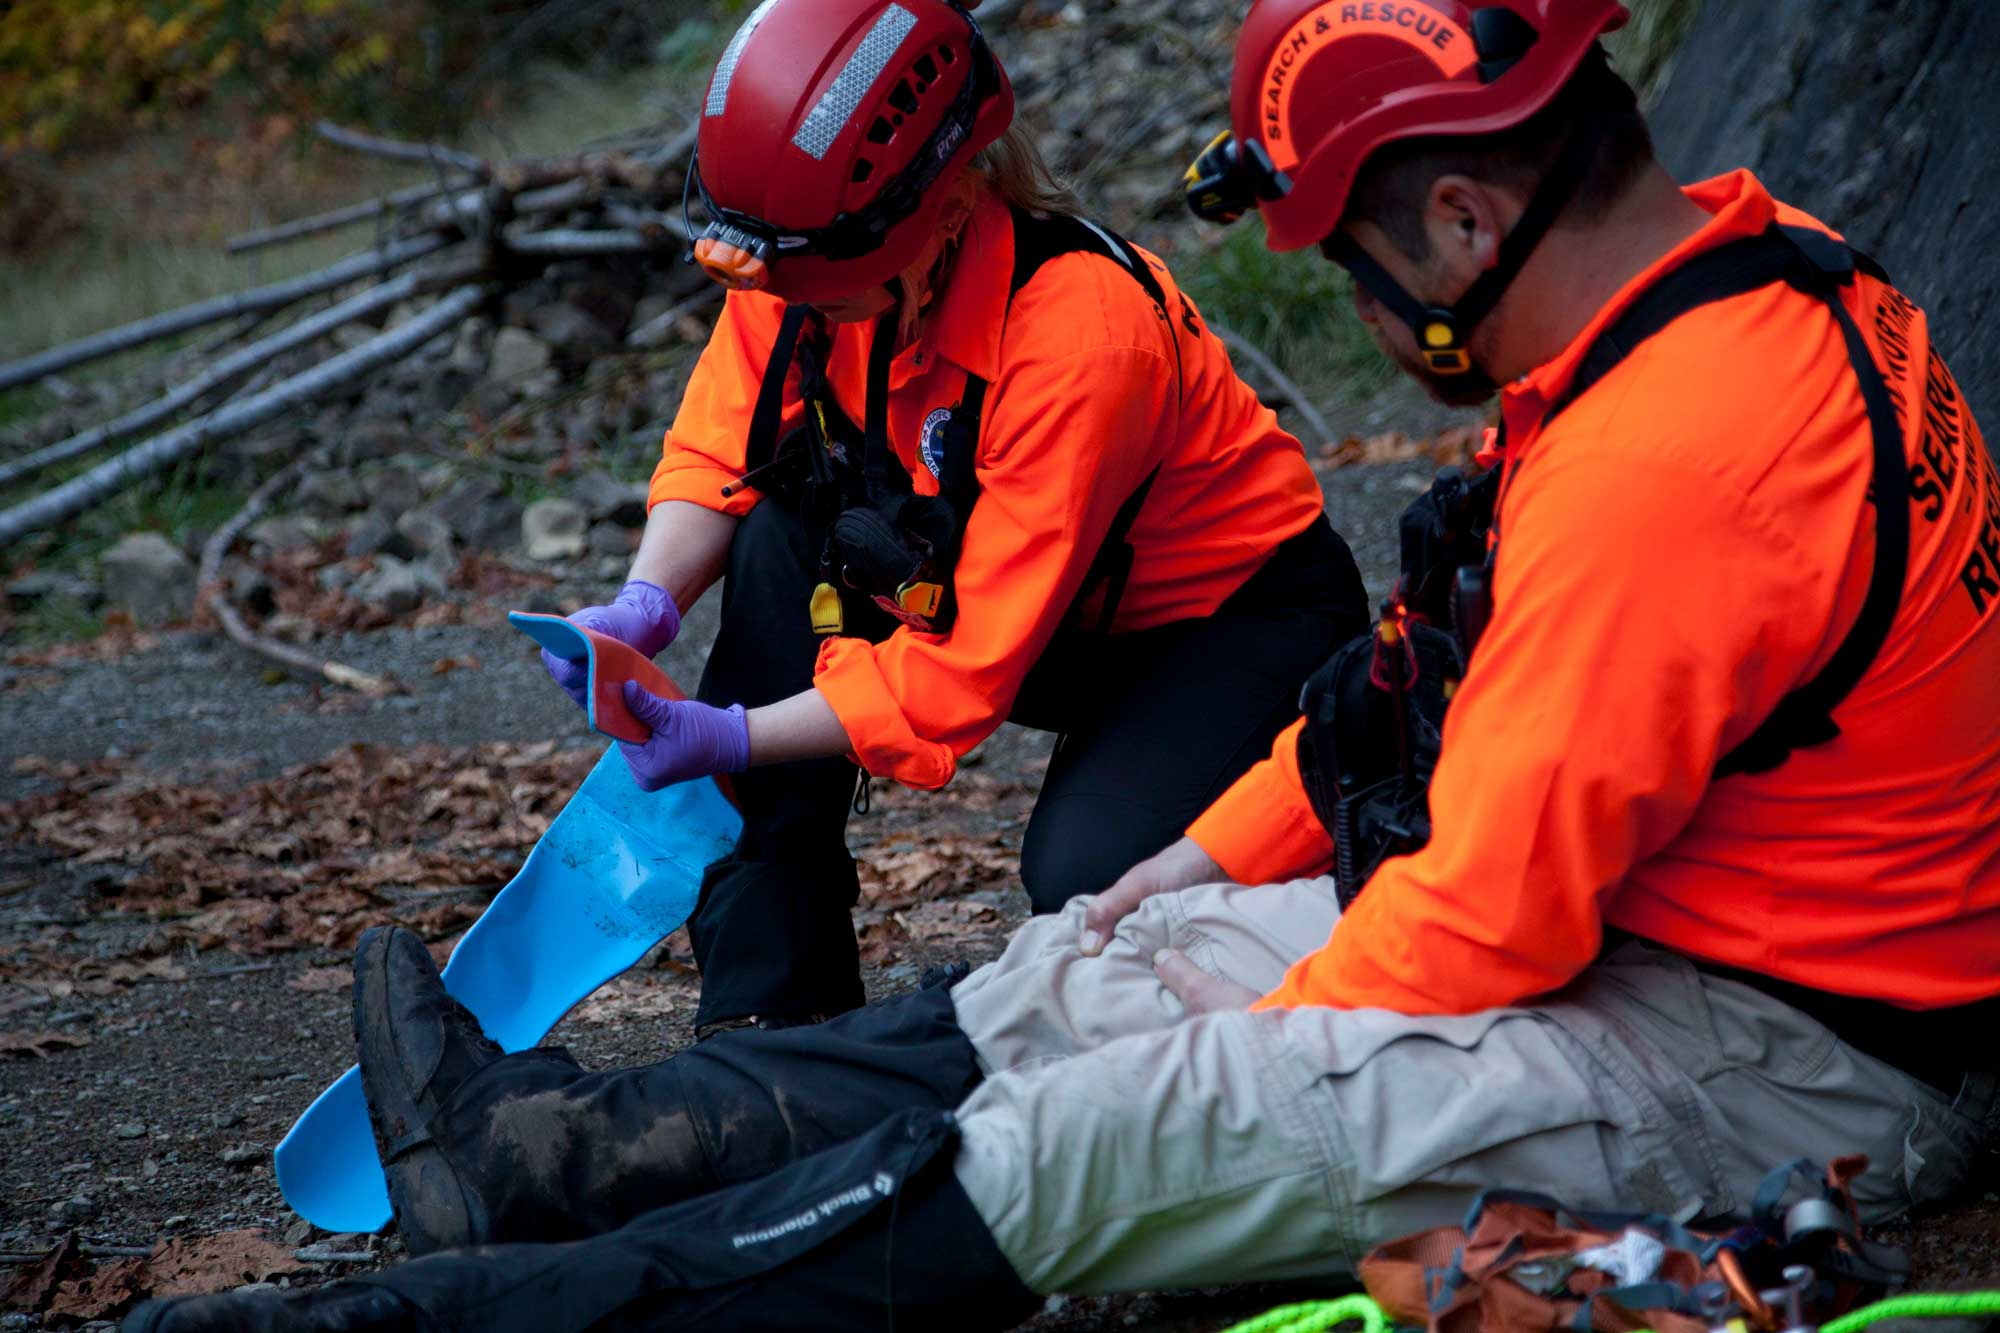 Search and Rescue Team Using a Sam Splint to Stabilize an Injured Leg